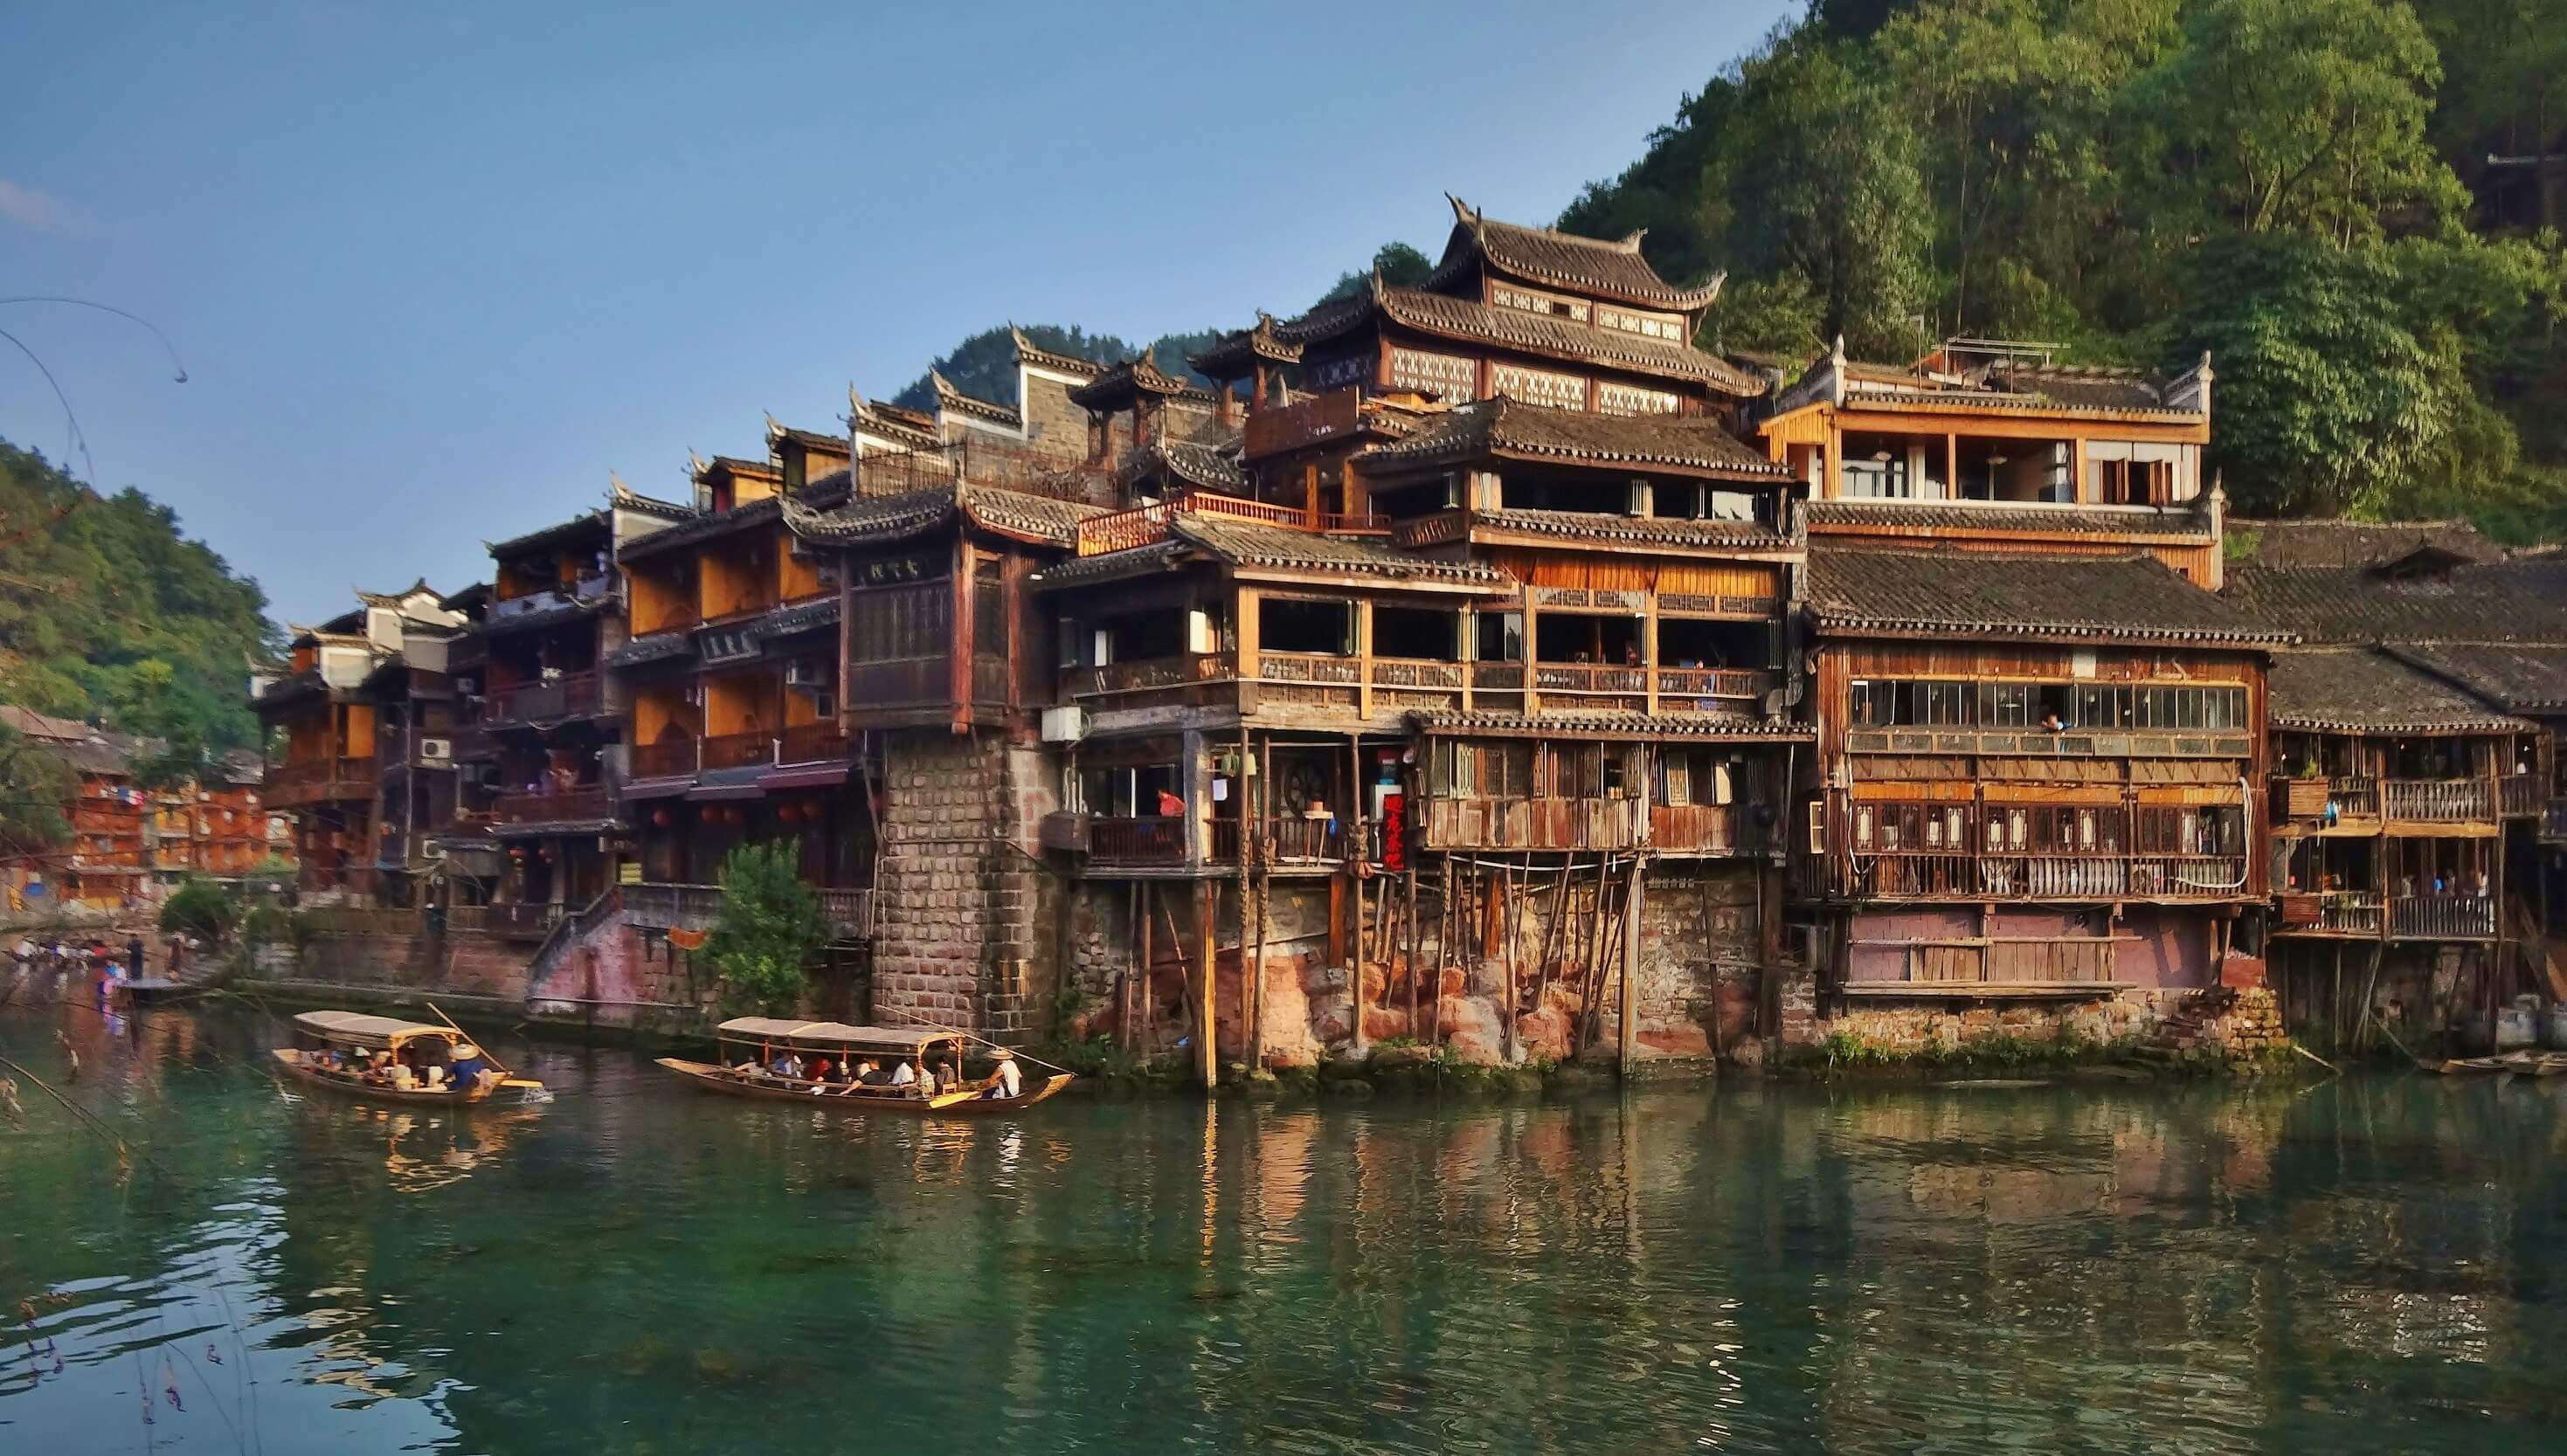 Fenghuang Chine vieille ville